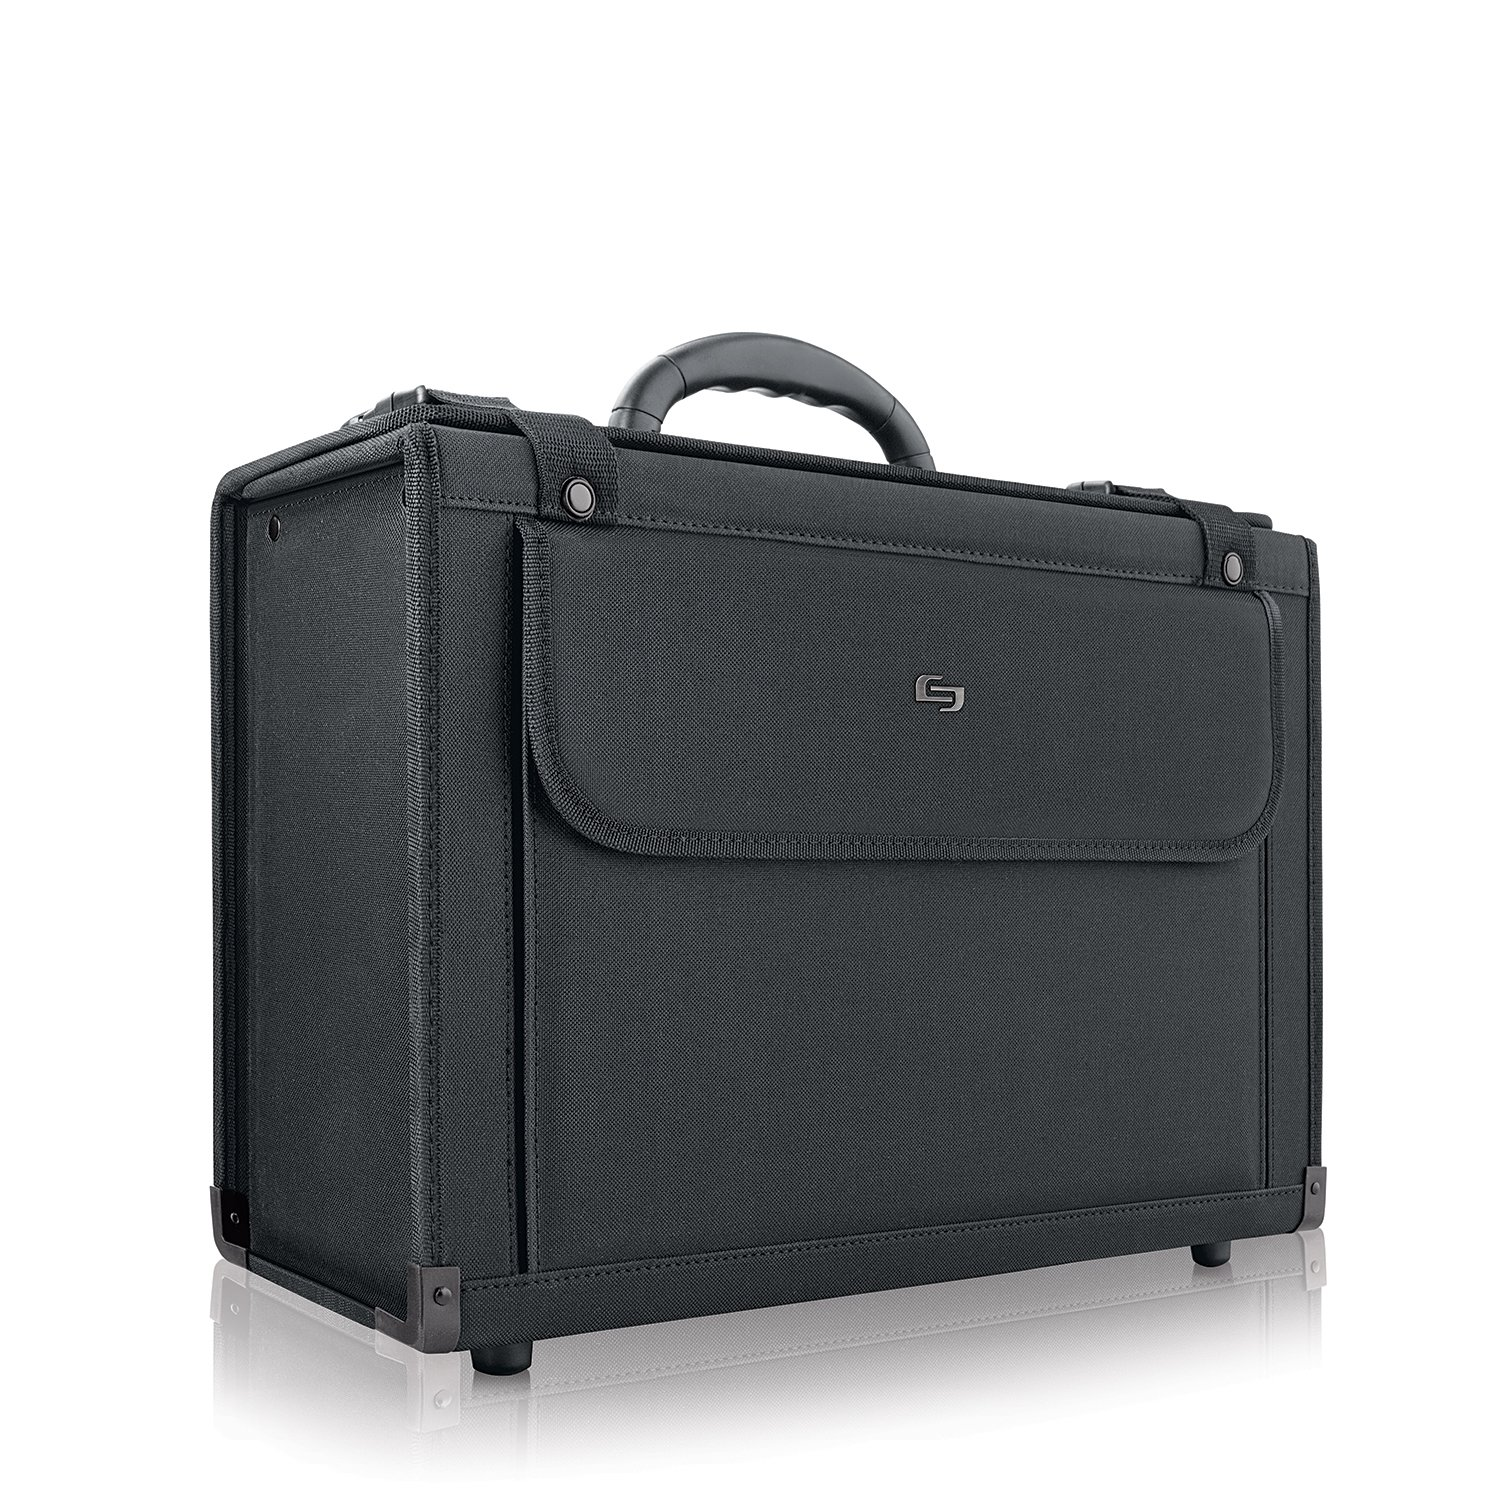 Solo Classic 16 Inch Laptop Catalog Case, Black by SOLO (Image #2)